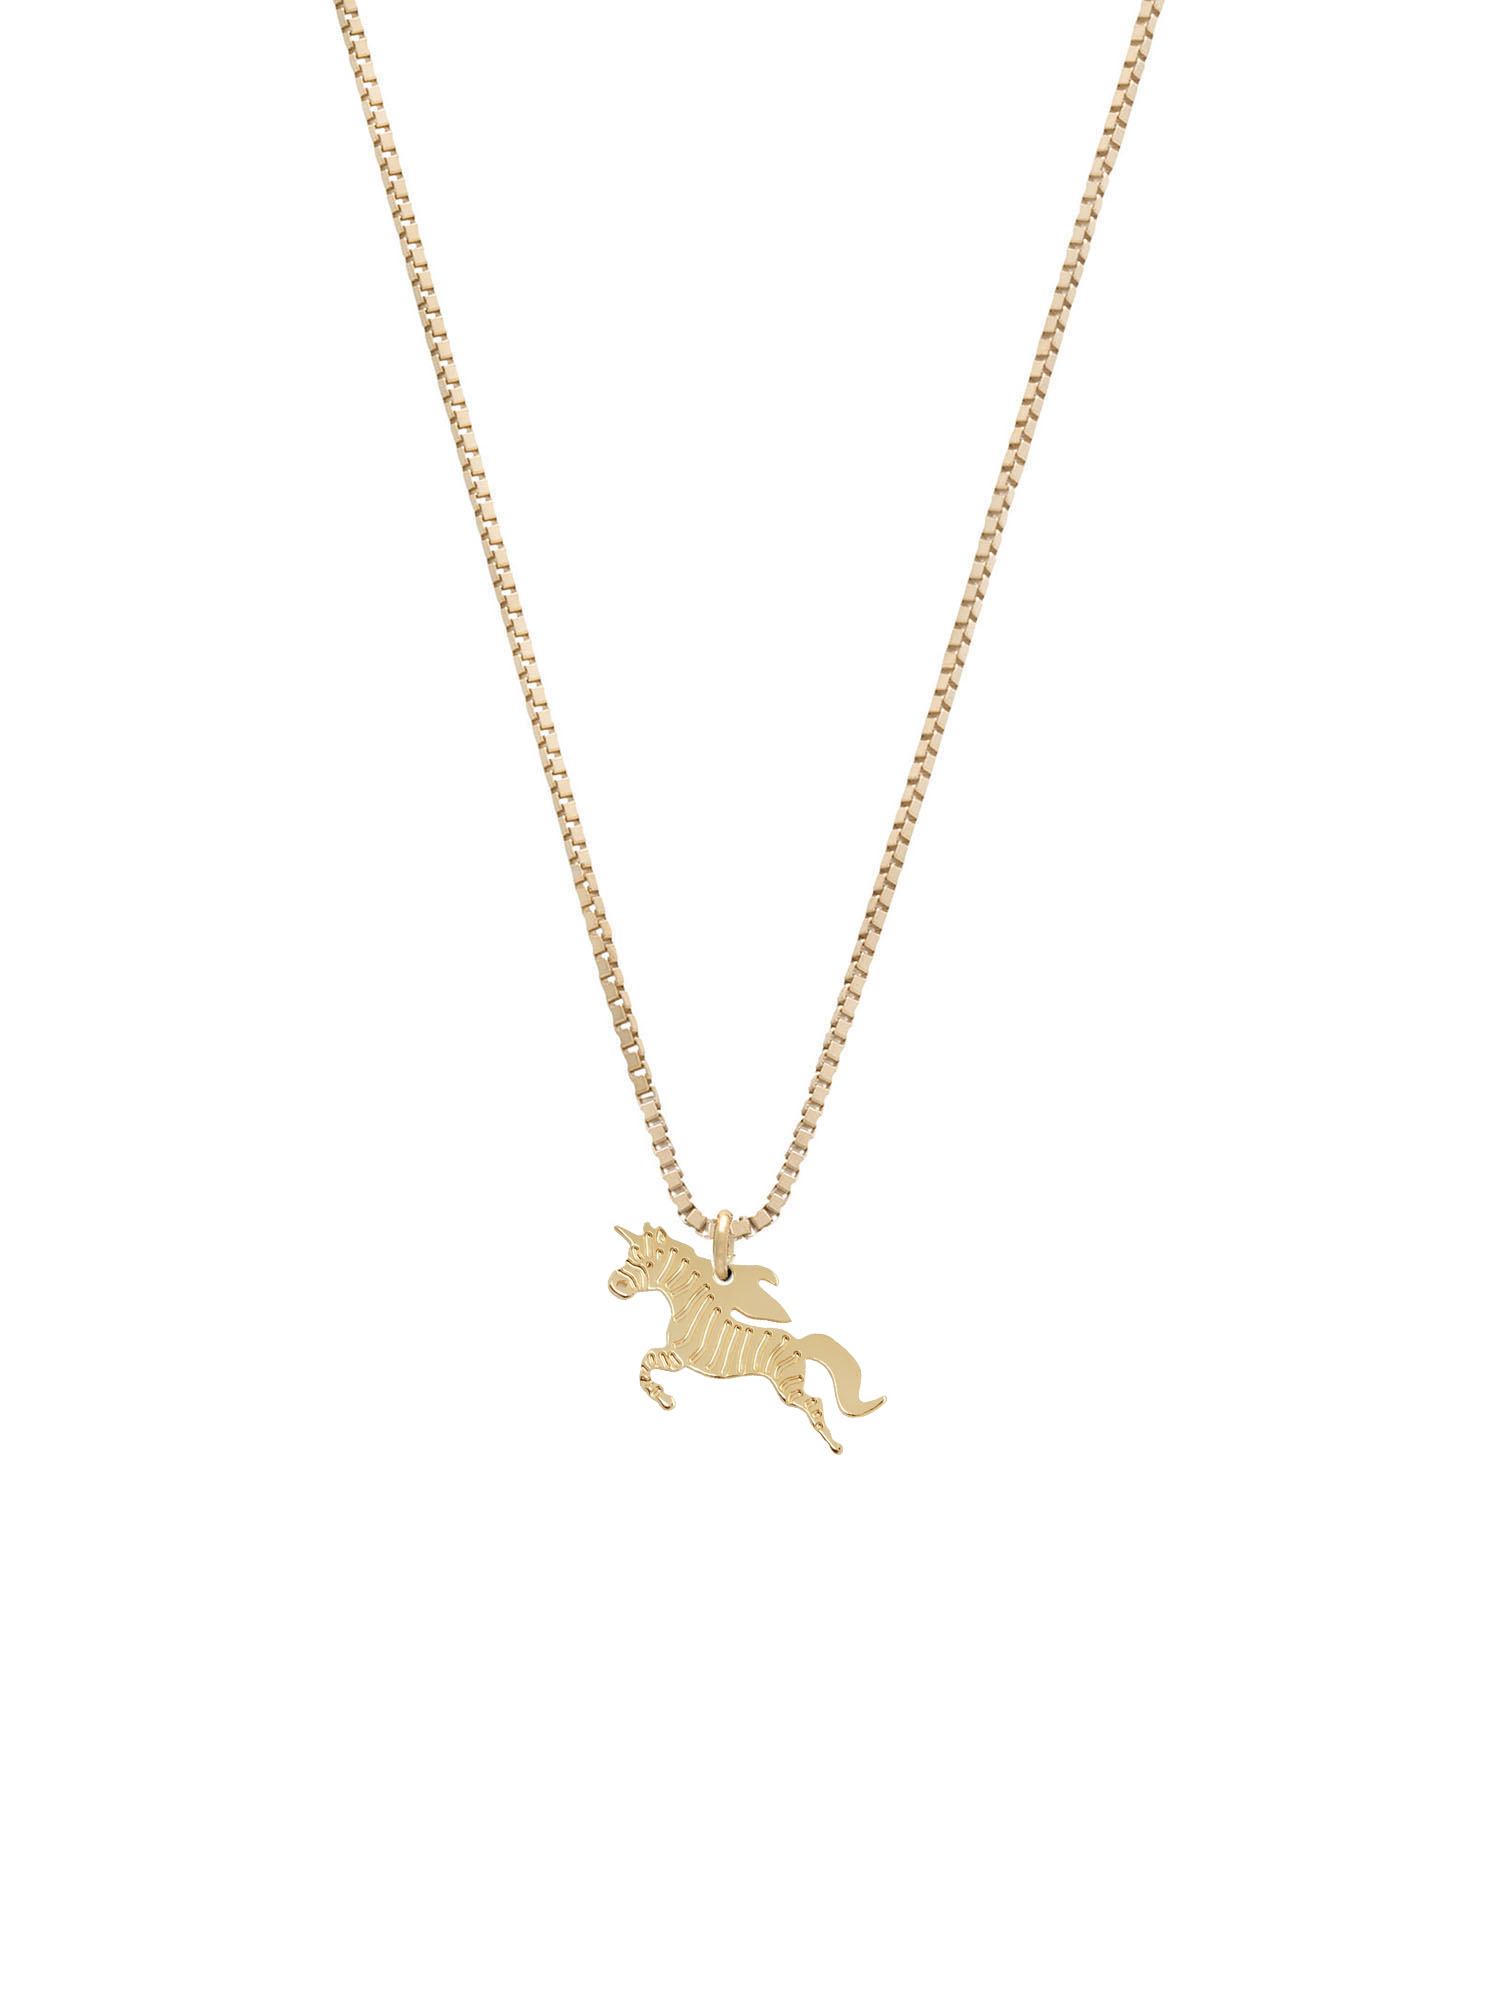 zebracorn necklace Malaika Raiss xxp5LlTTVV